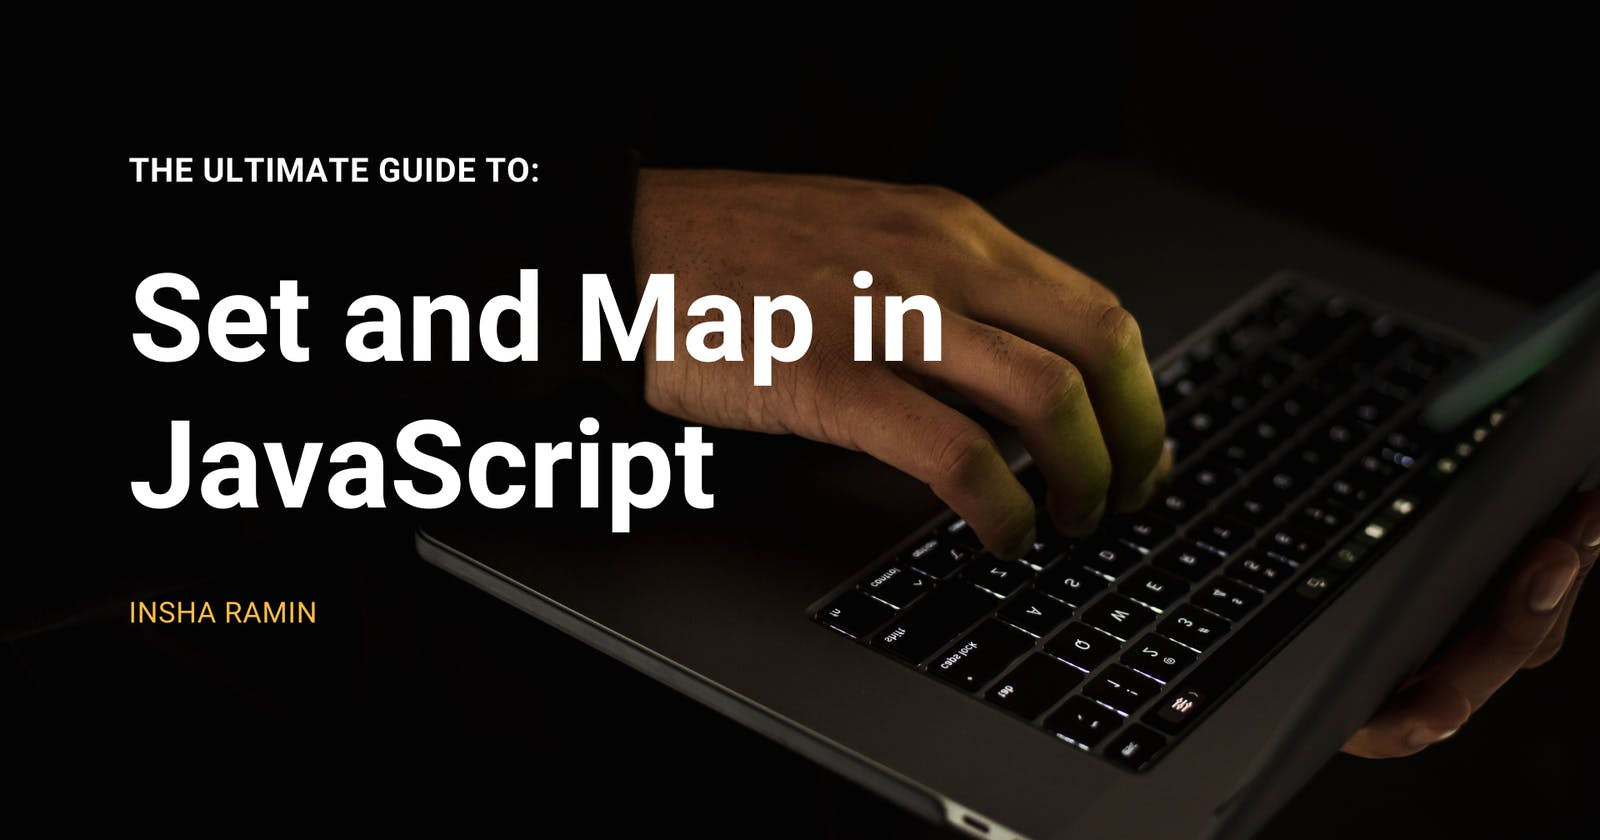 The Ultimate Guide To Set and Map in JavaScript